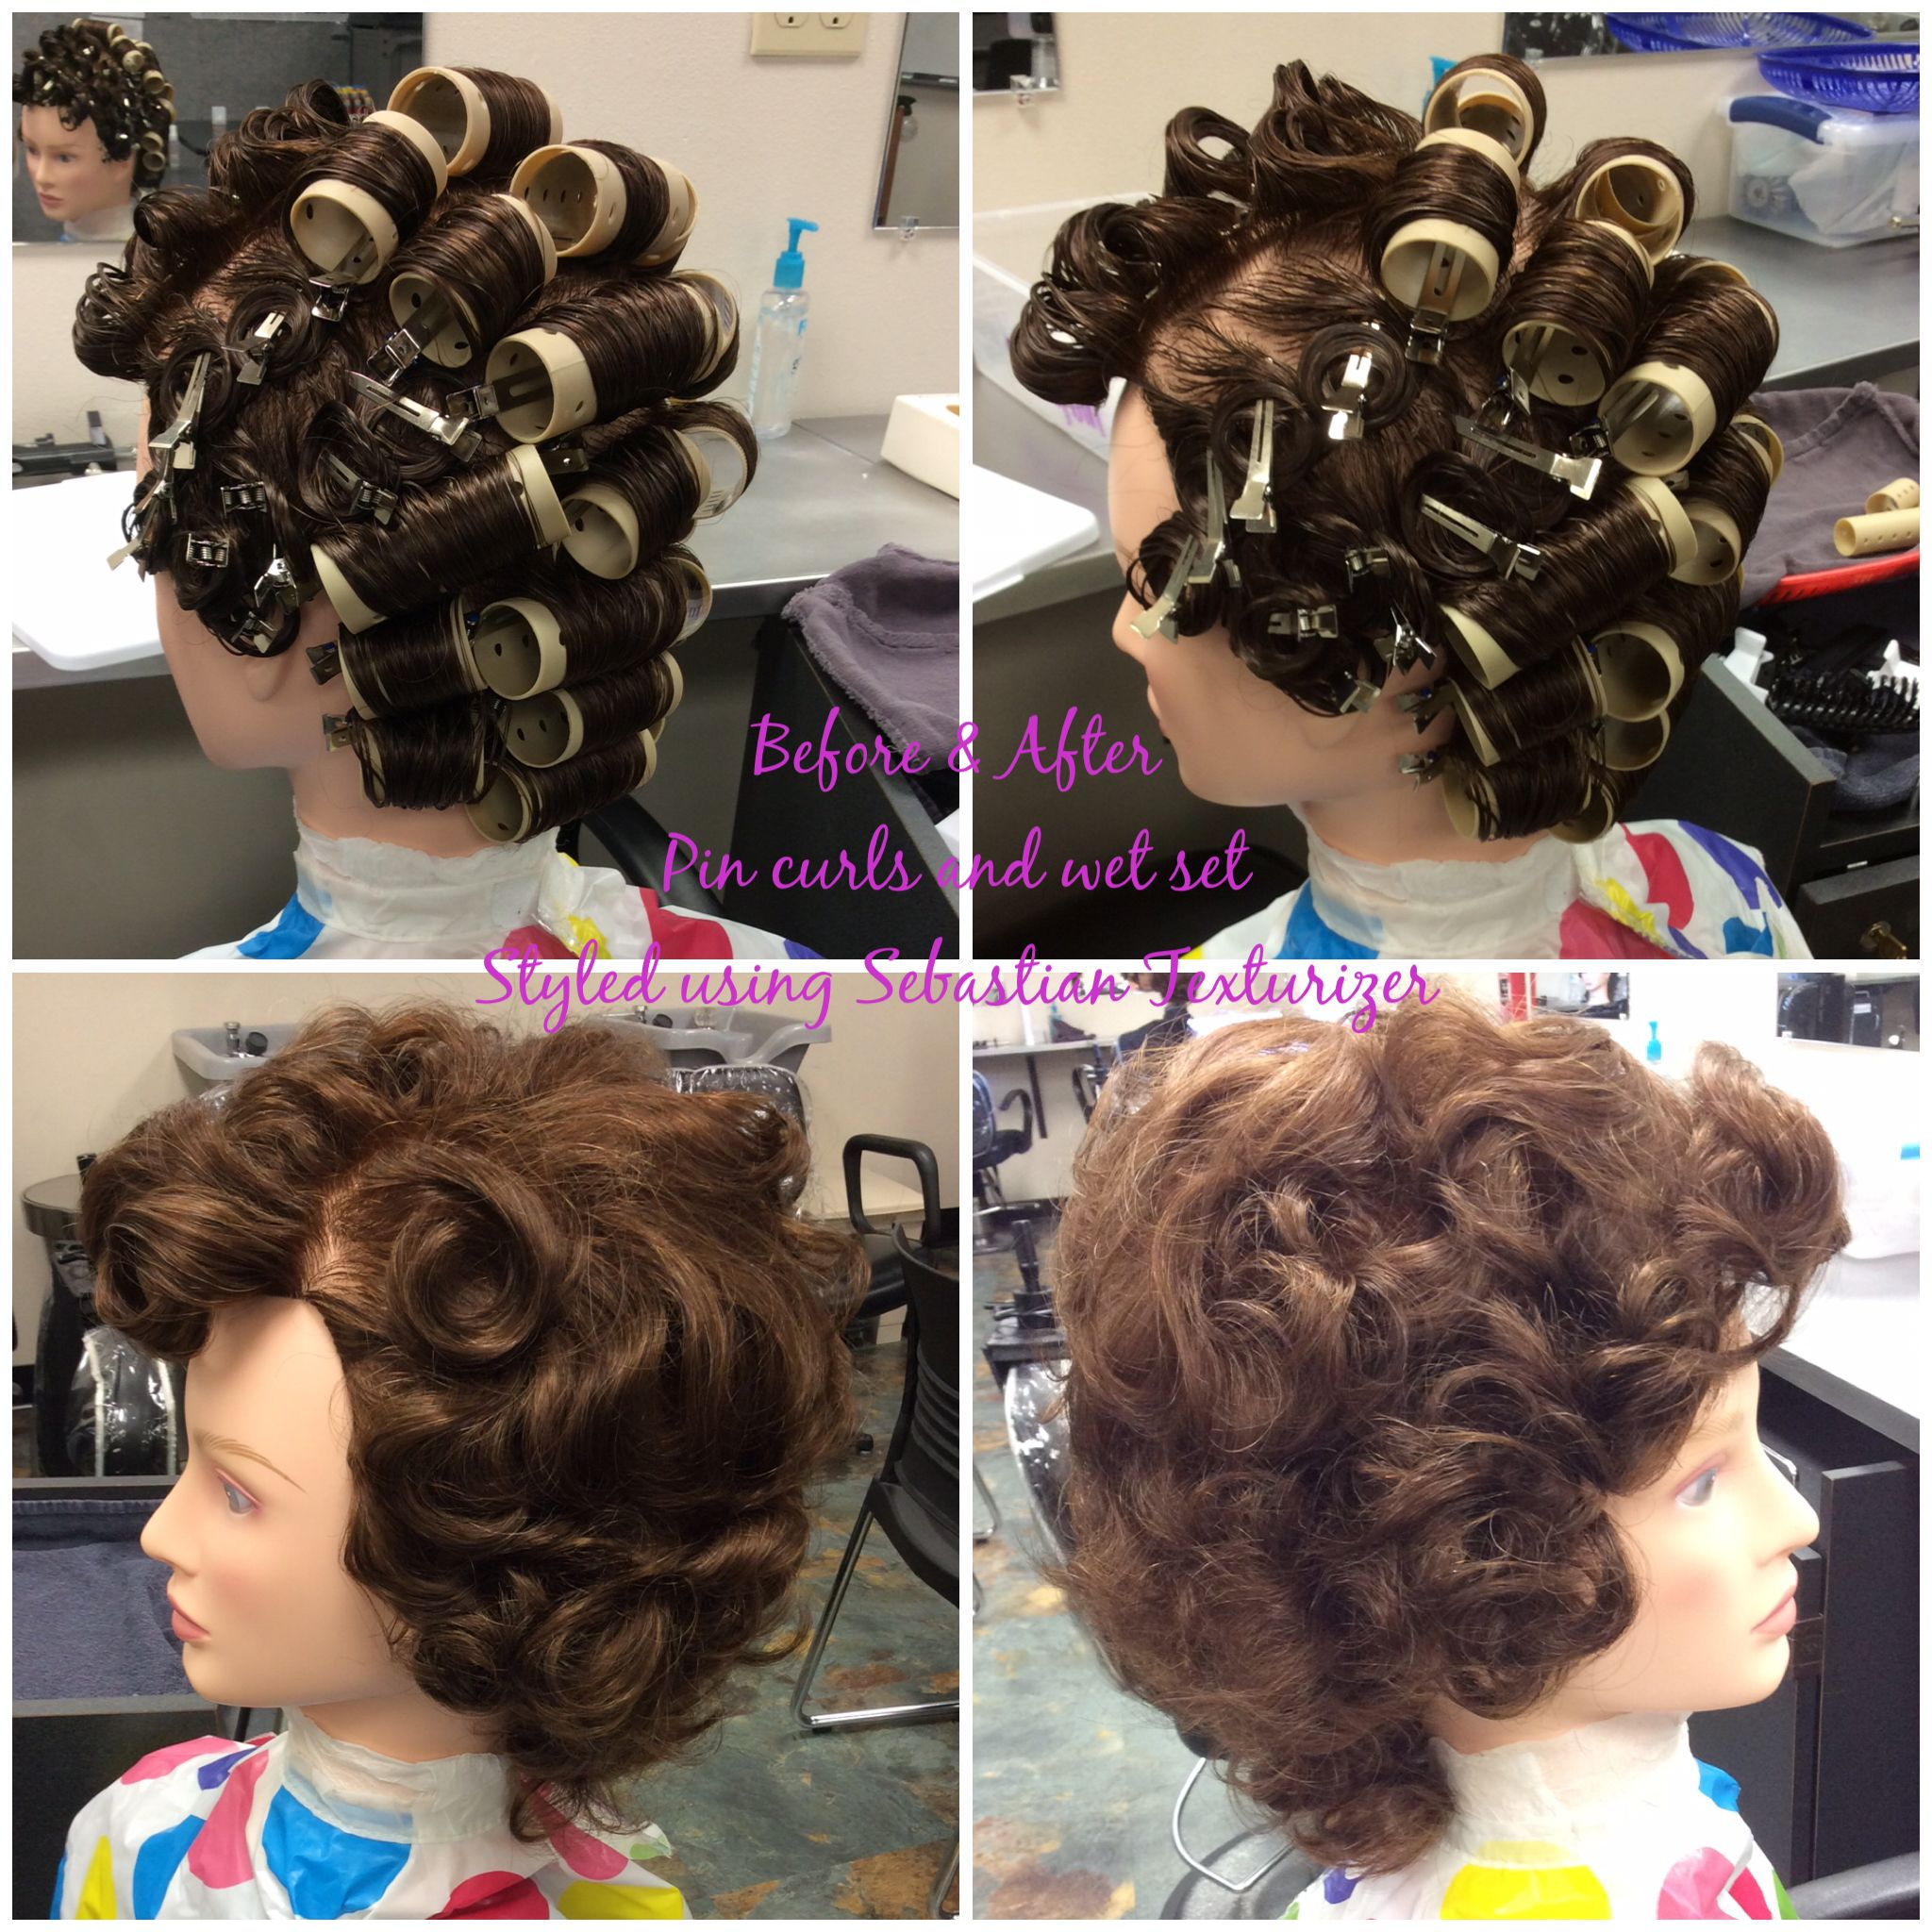 Pin curls and wet set with Sebastian Texturizer